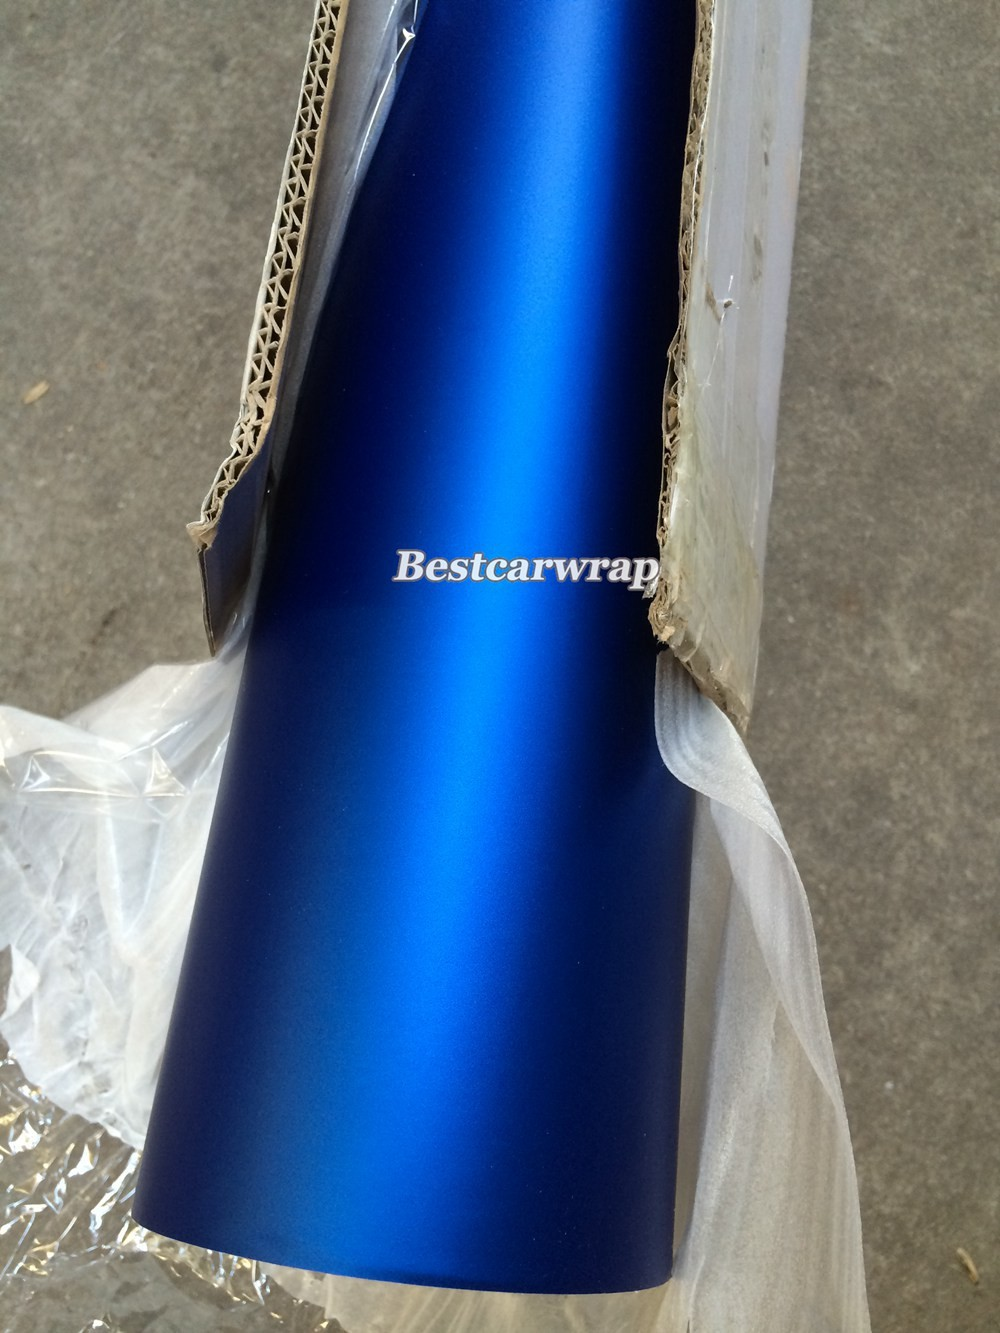 Buy 65ft X 5ft Metallic Satin Matte Chrome Blue Vinyl Roll